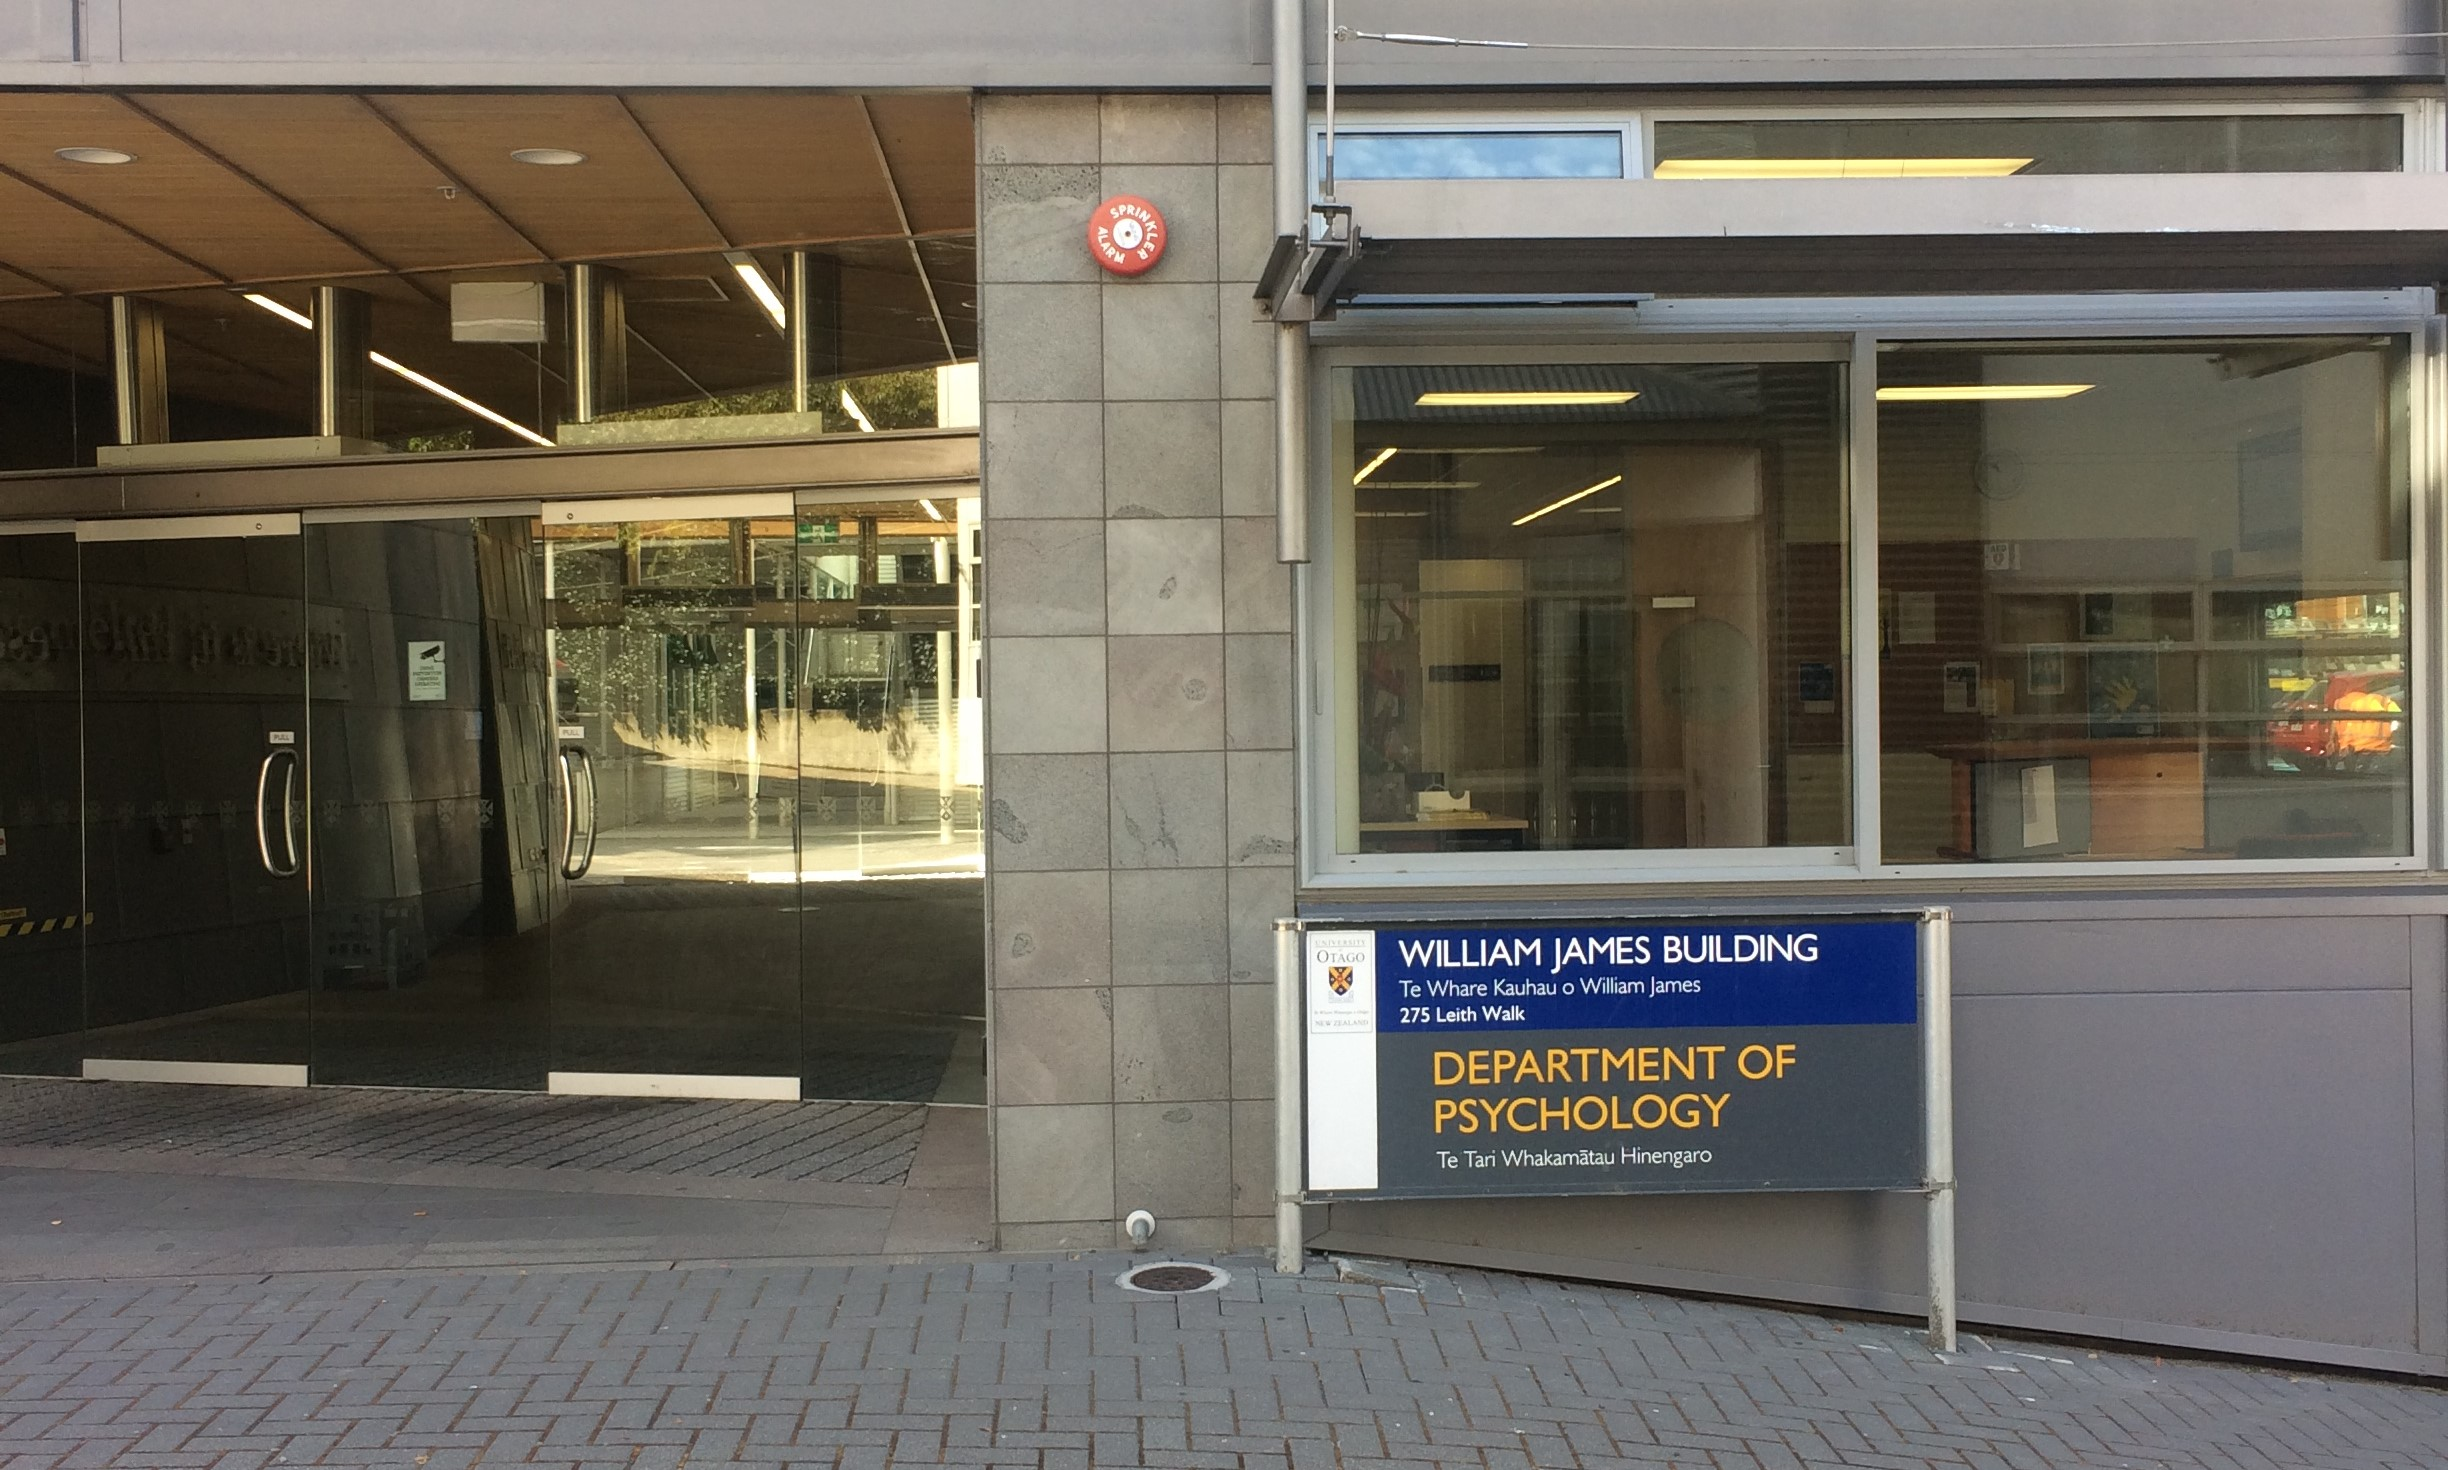 The entrance to the William James building